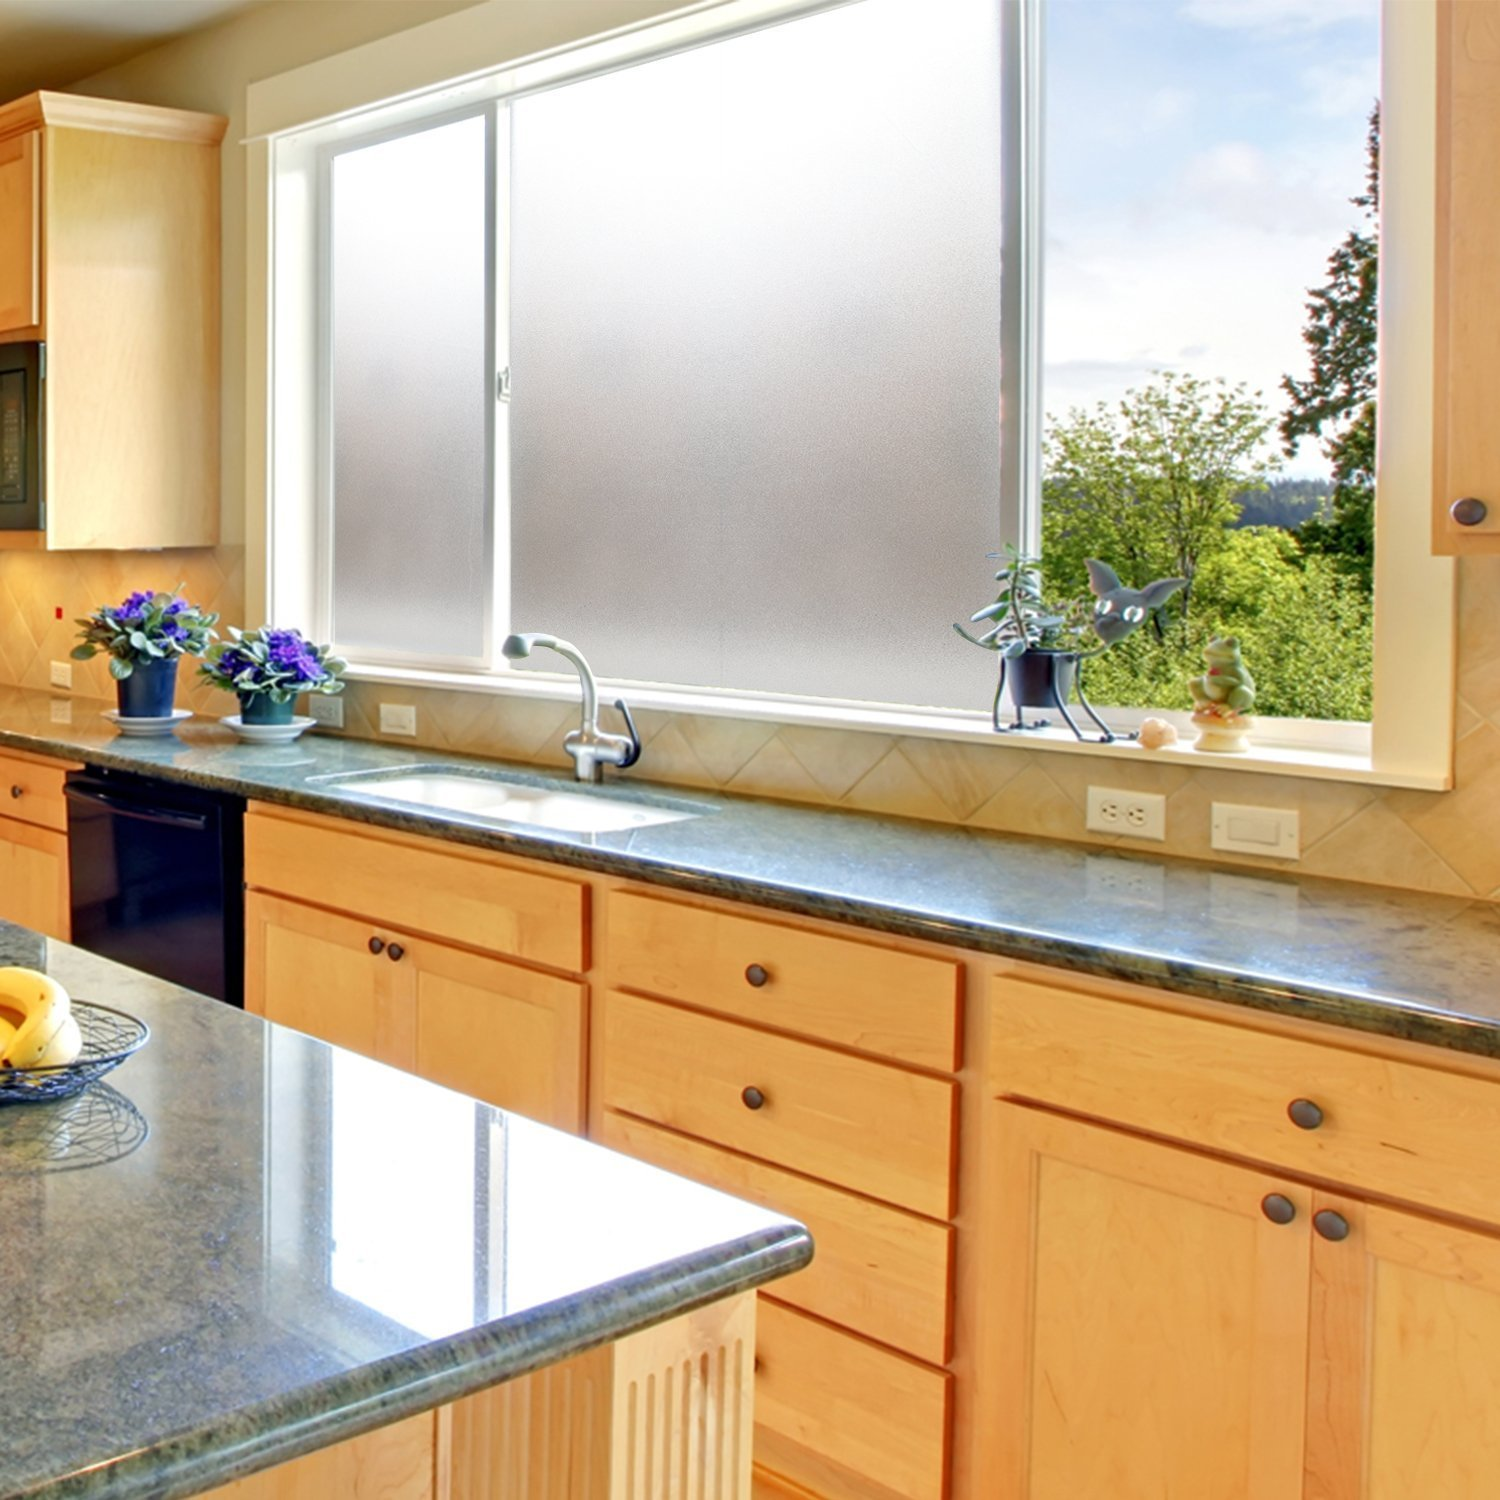 Coavas Window Film Non Adhesive Frosted Home Office Film